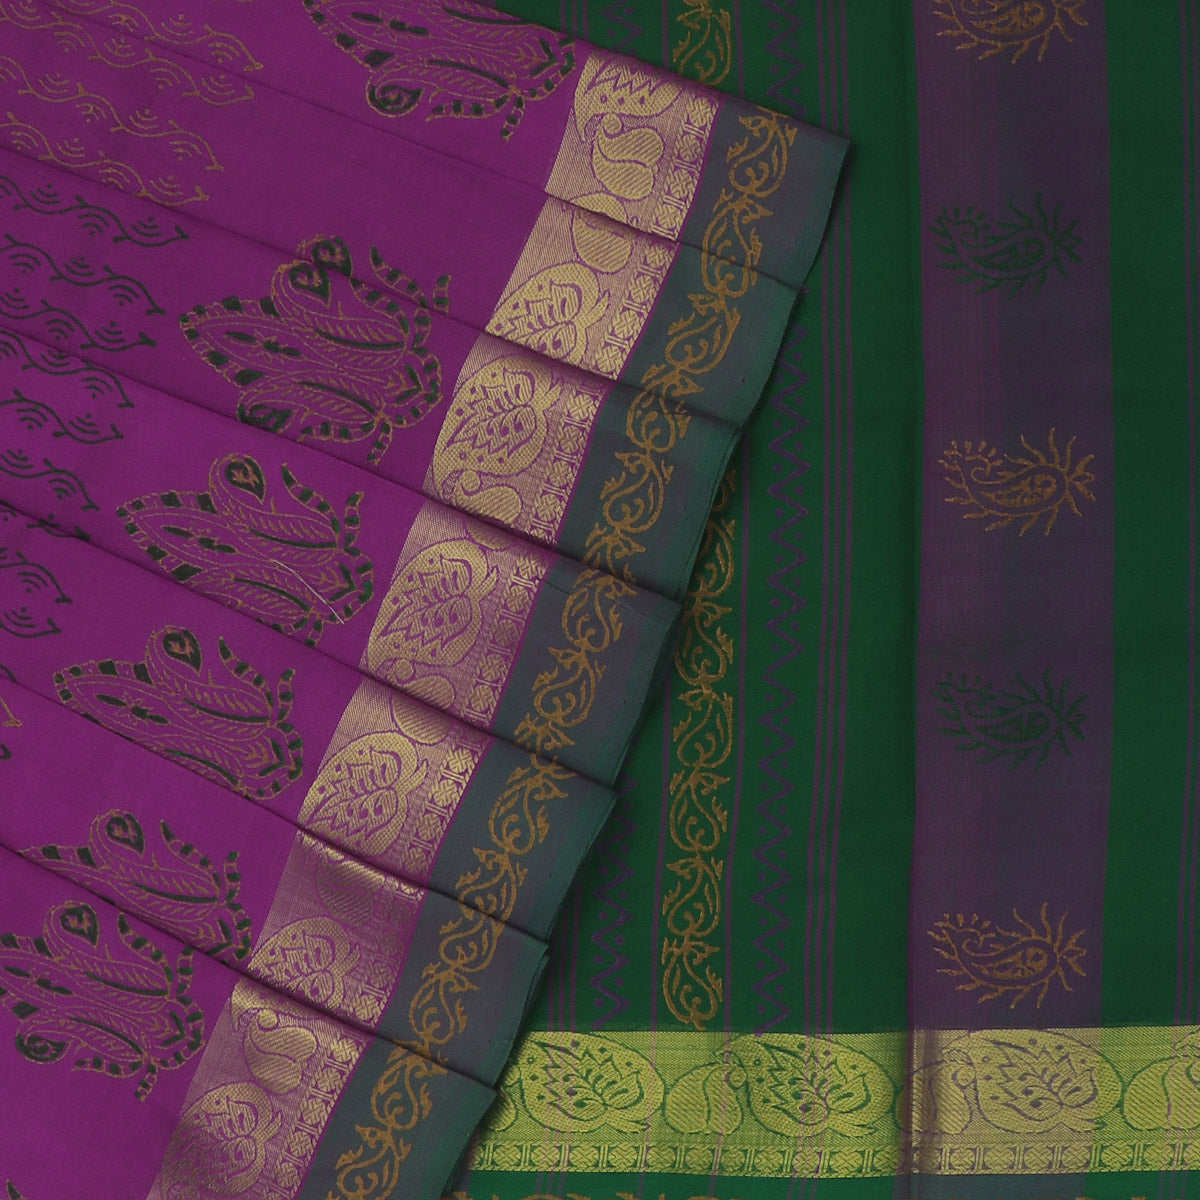 Printed Silk Cotton Saree Violet and Green with Simple Zari border